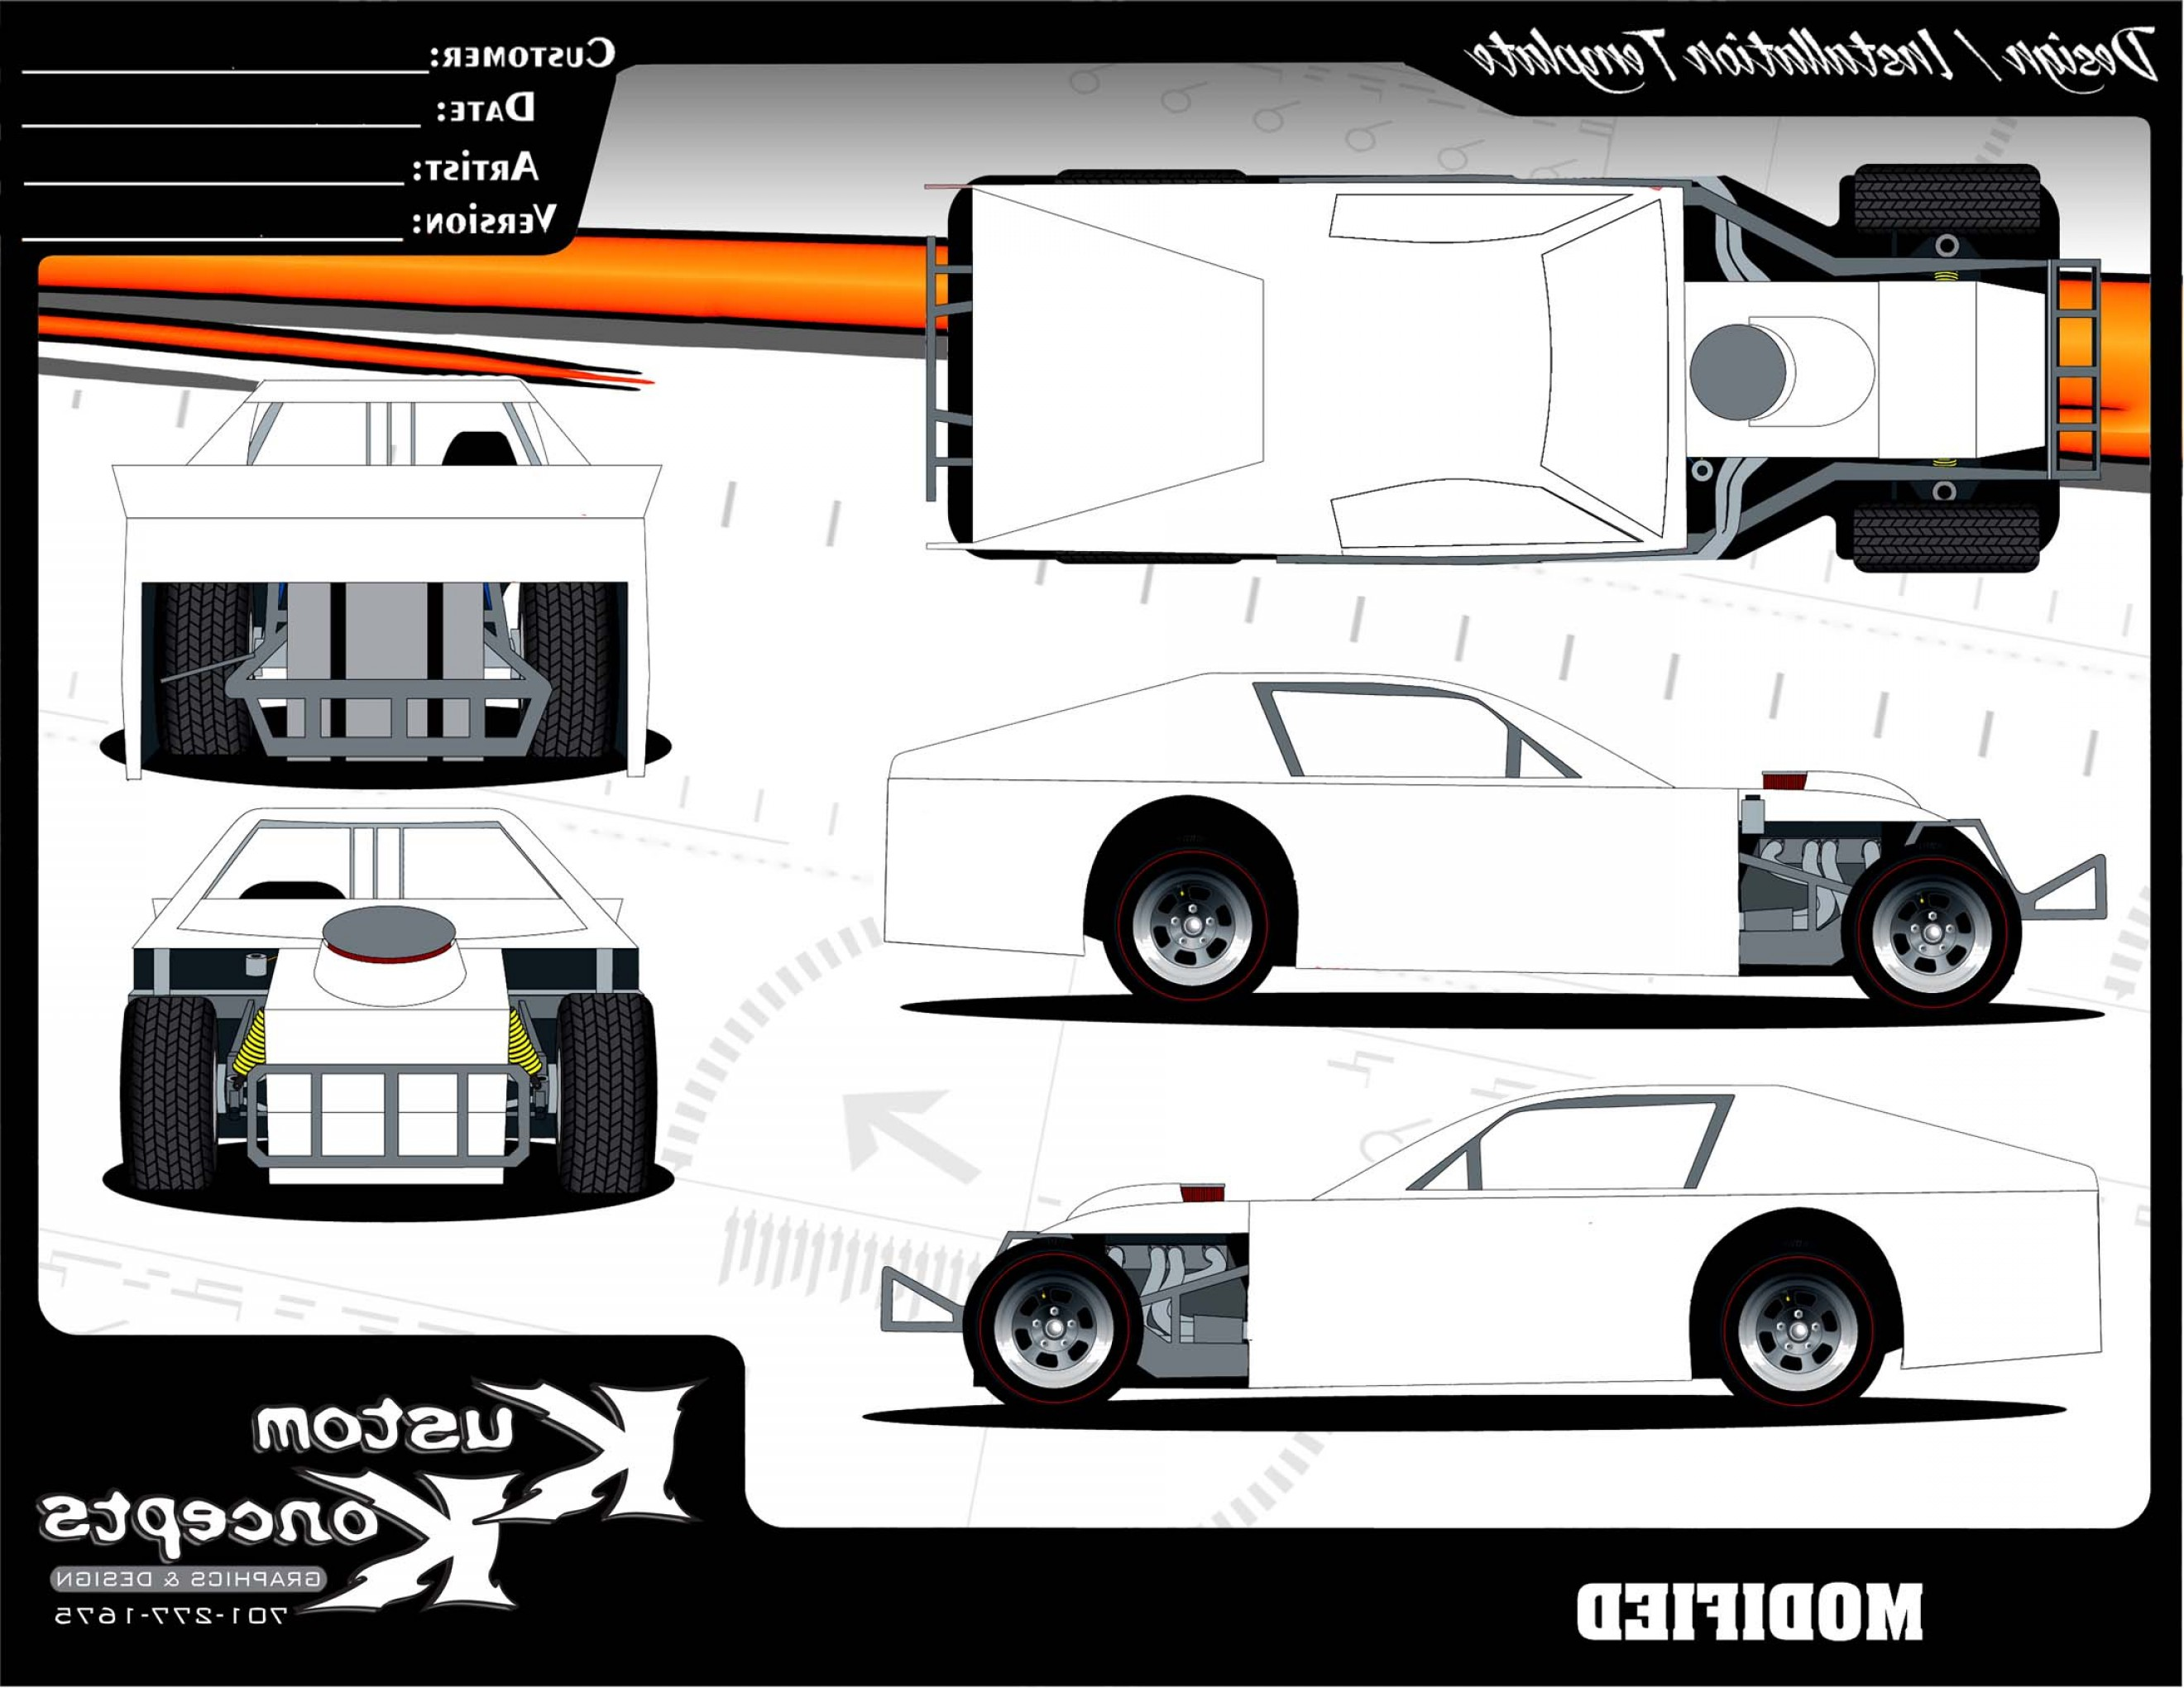 Late Model Race Car Vector Art: Images Of Modified Dirt Car Drawing Template Download